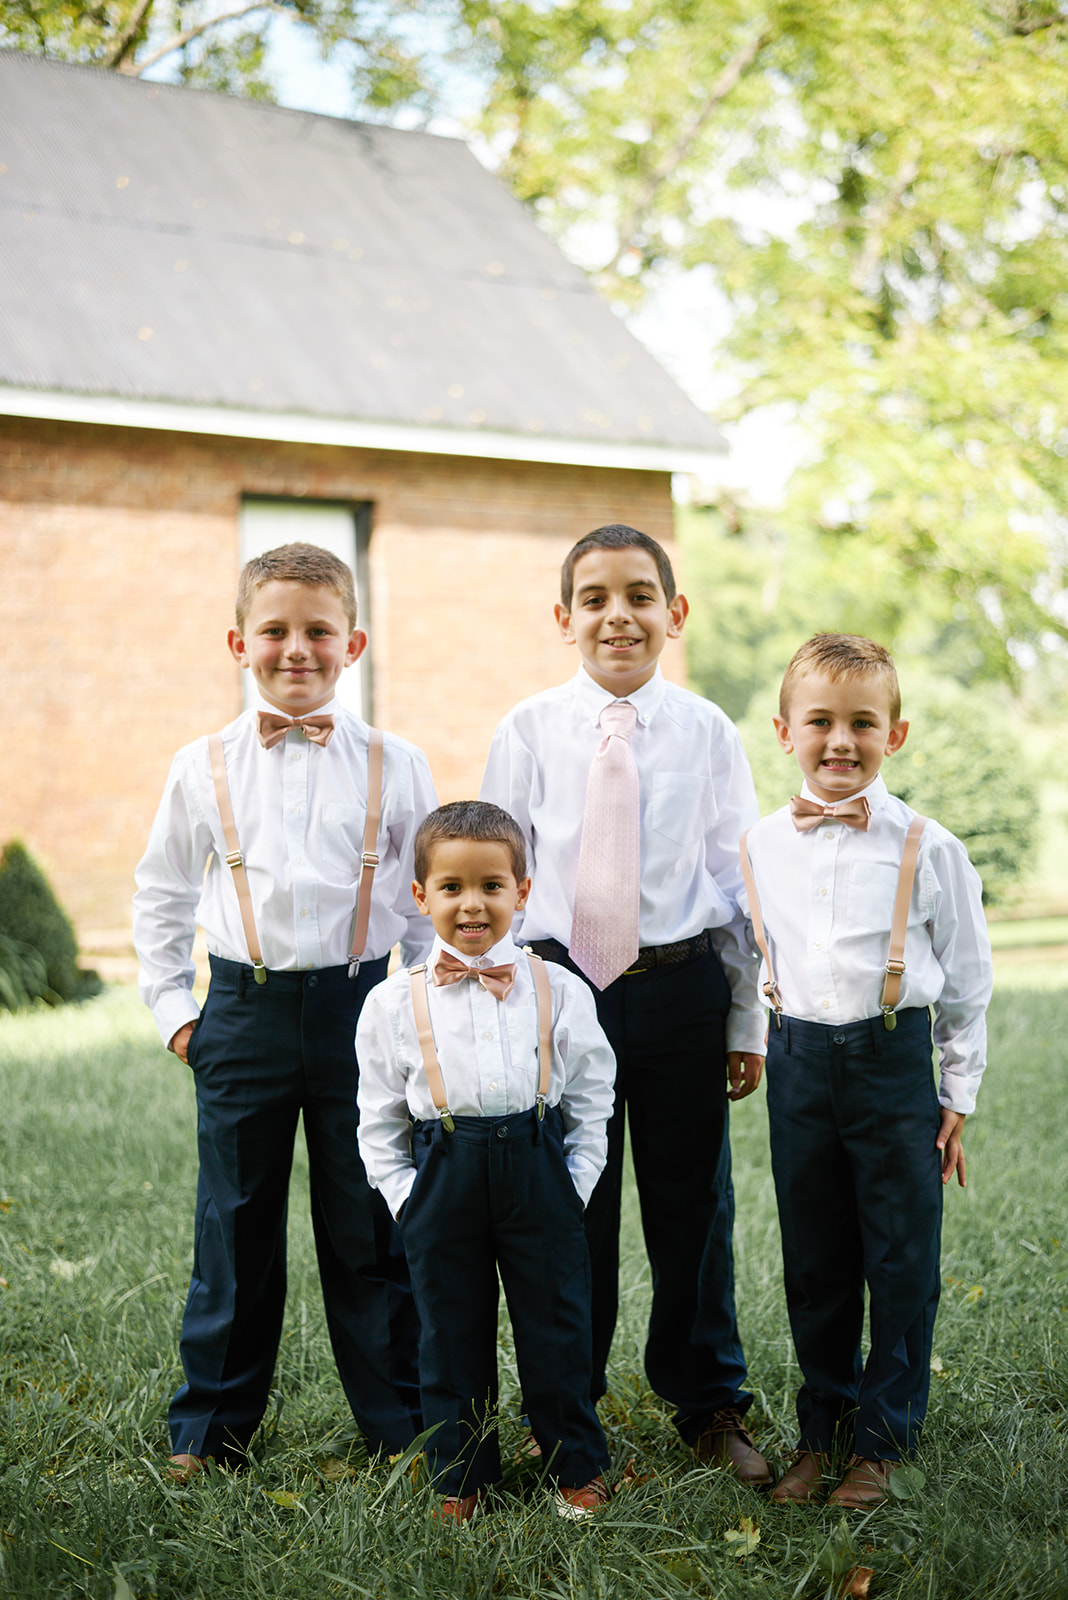 Ring bearers at wedding in Kentucky